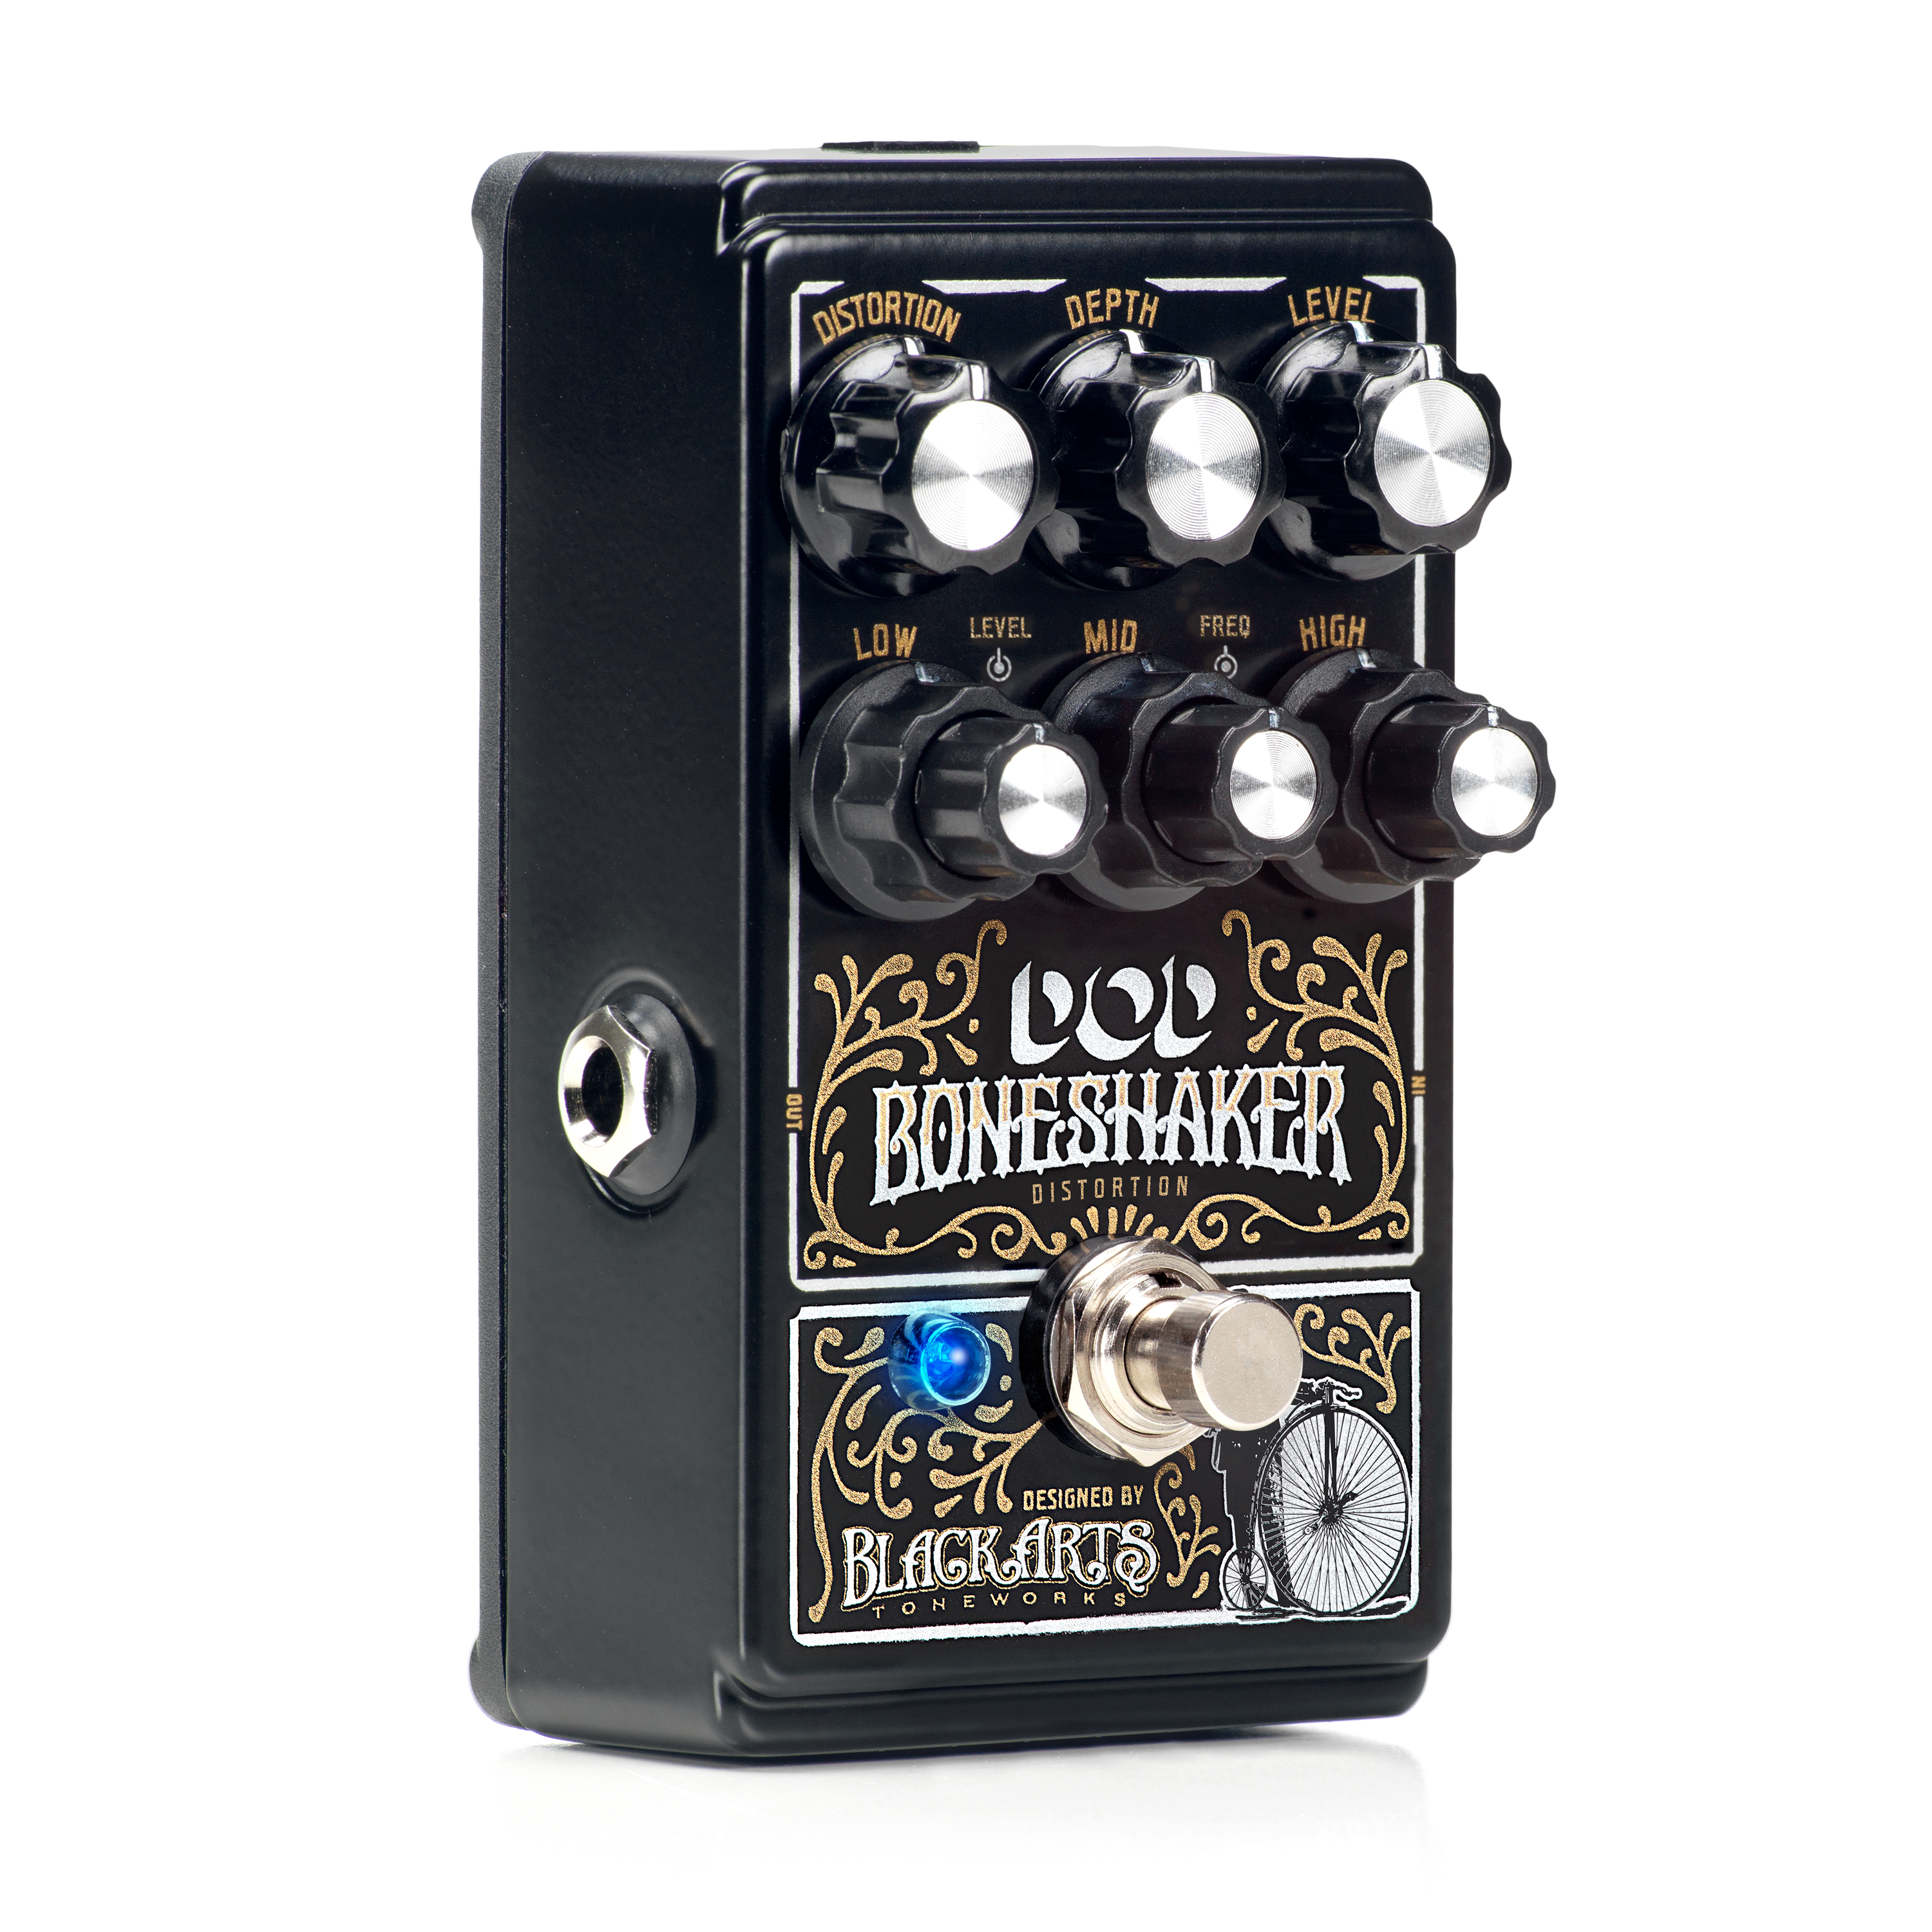 Boneshaker Digitech Guitar Effects Circuit Diagram 3 Band Graphic Equalizer Distortion Pedal With Semi Parametric Eq